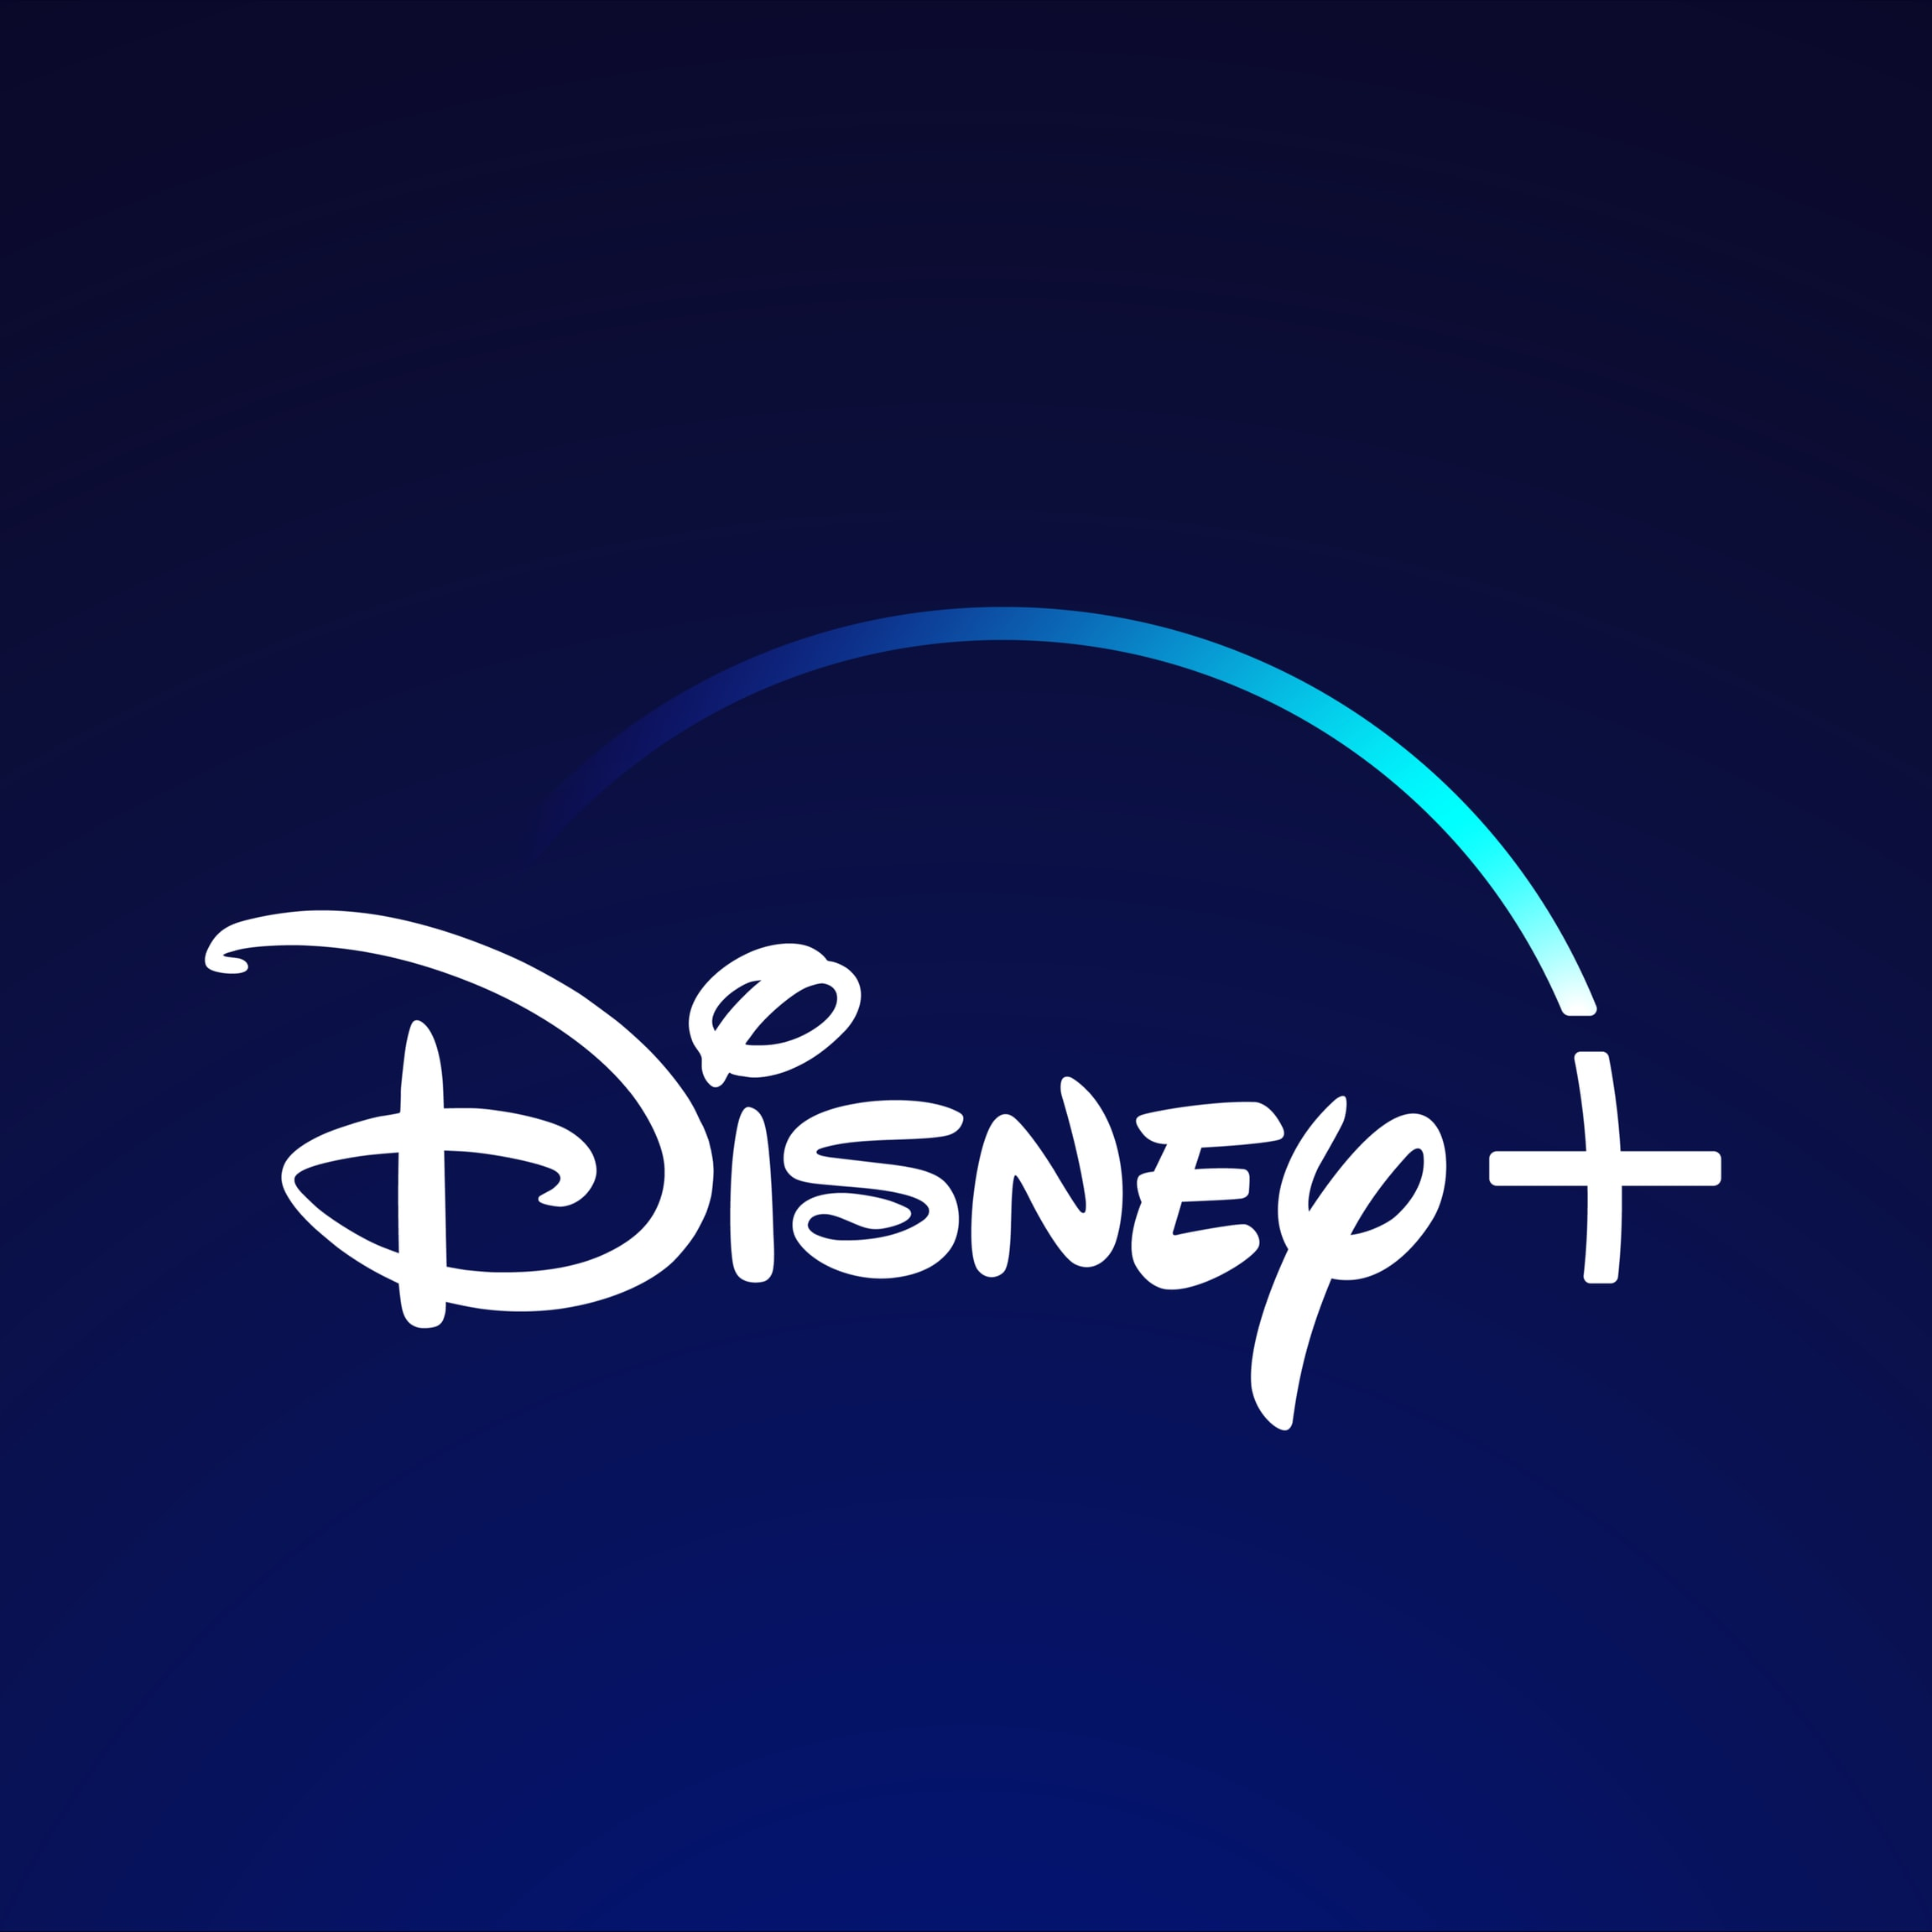 Next On Disney+: August 2020